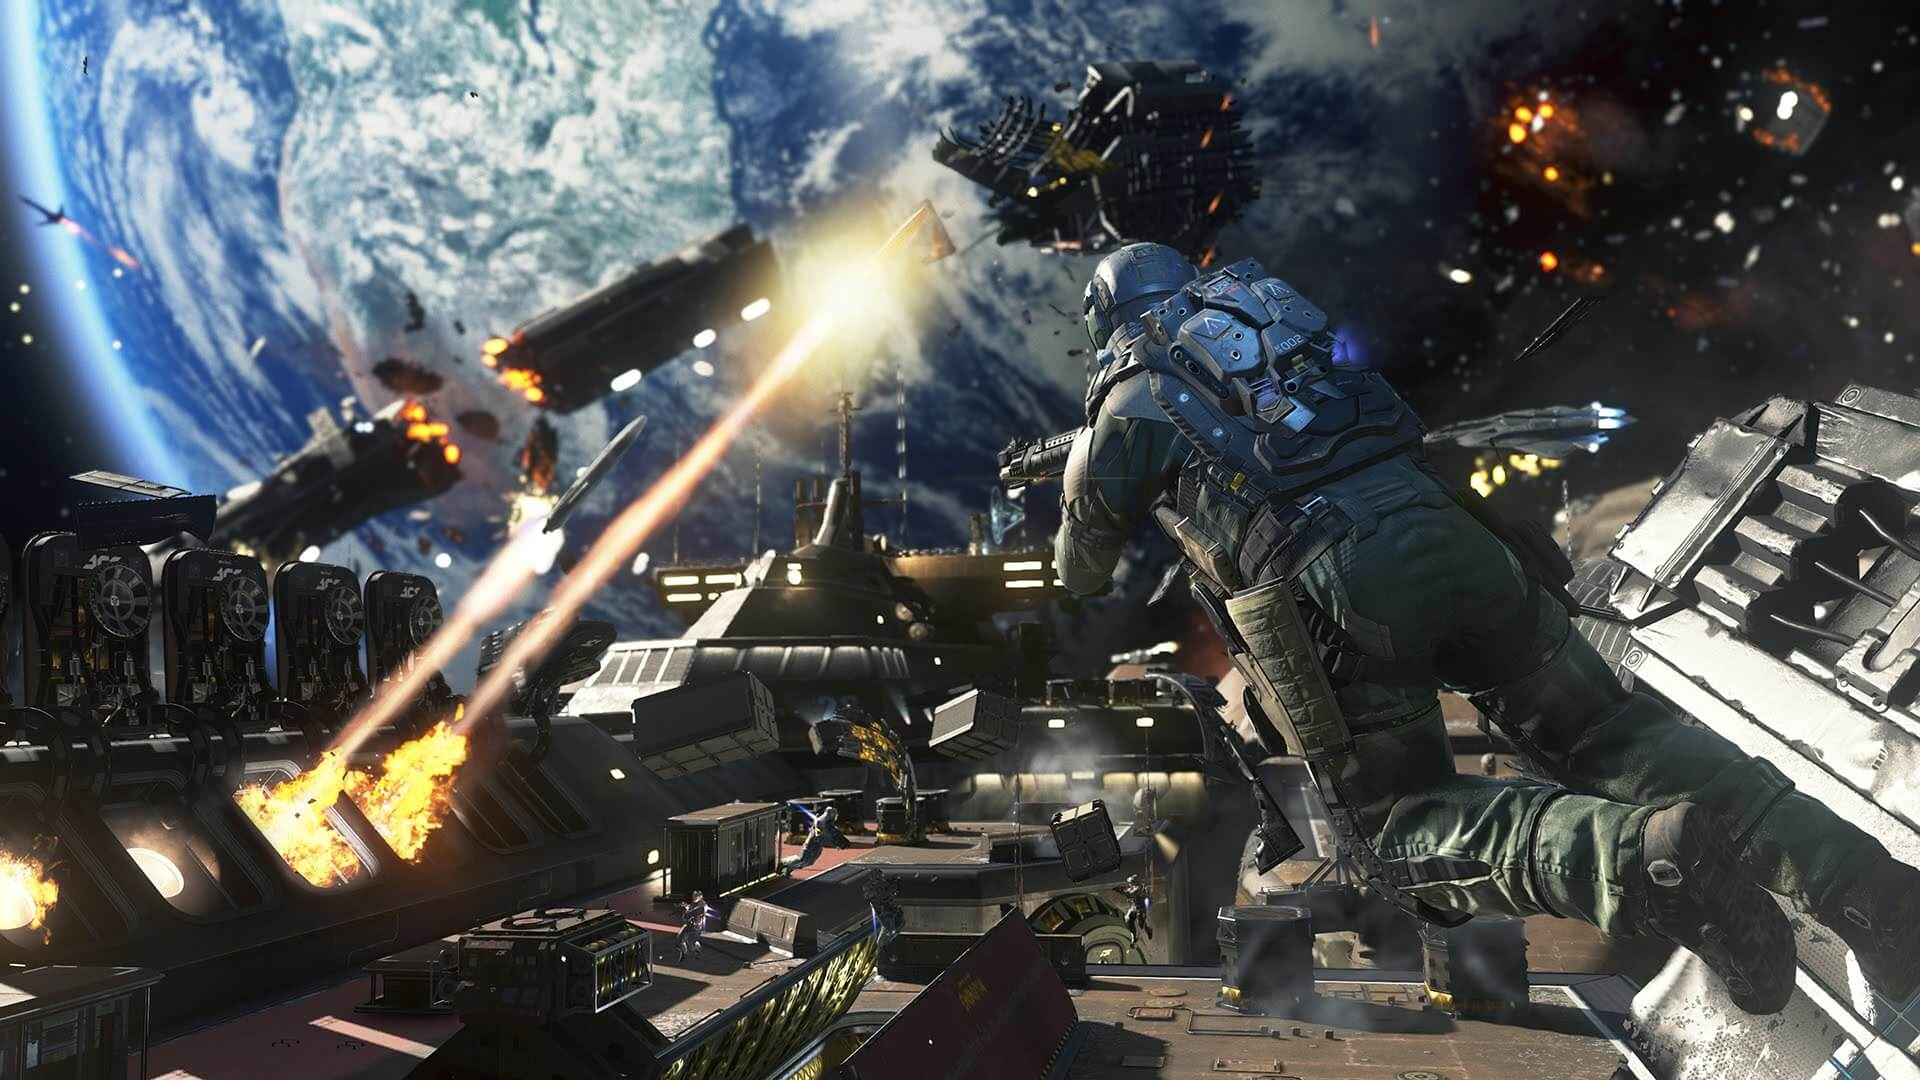 Free Download Game For Pc Call Of Duty 4 Bkdwnload